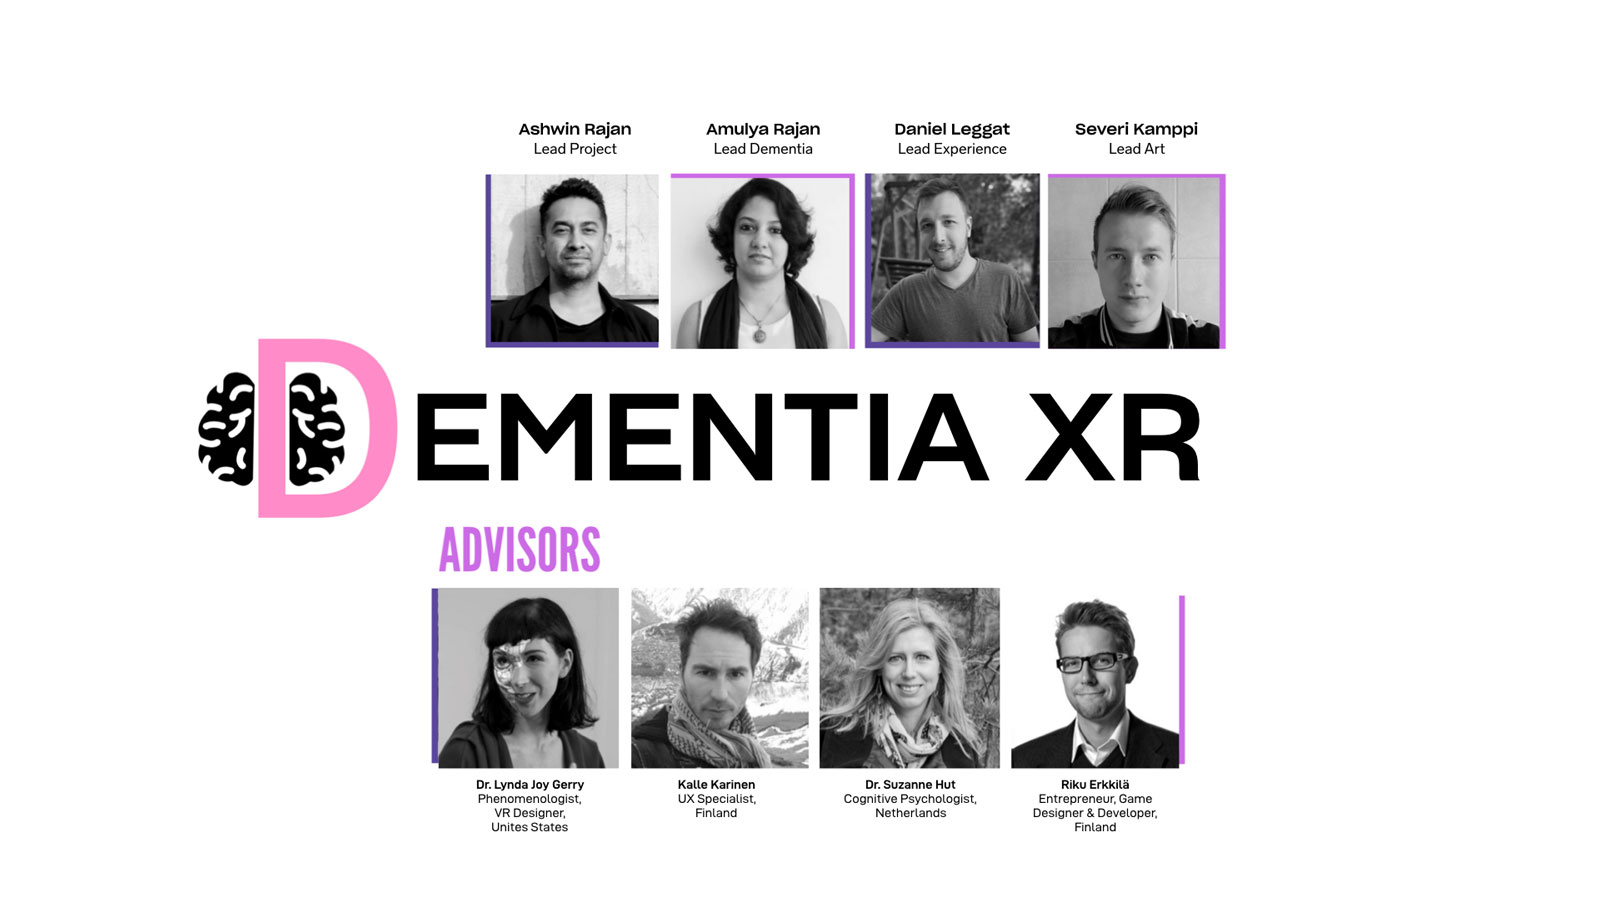 Collage of Dementia XR's team of four, and four advisors. Black-and-white images with Dementia XR logo in the middle.